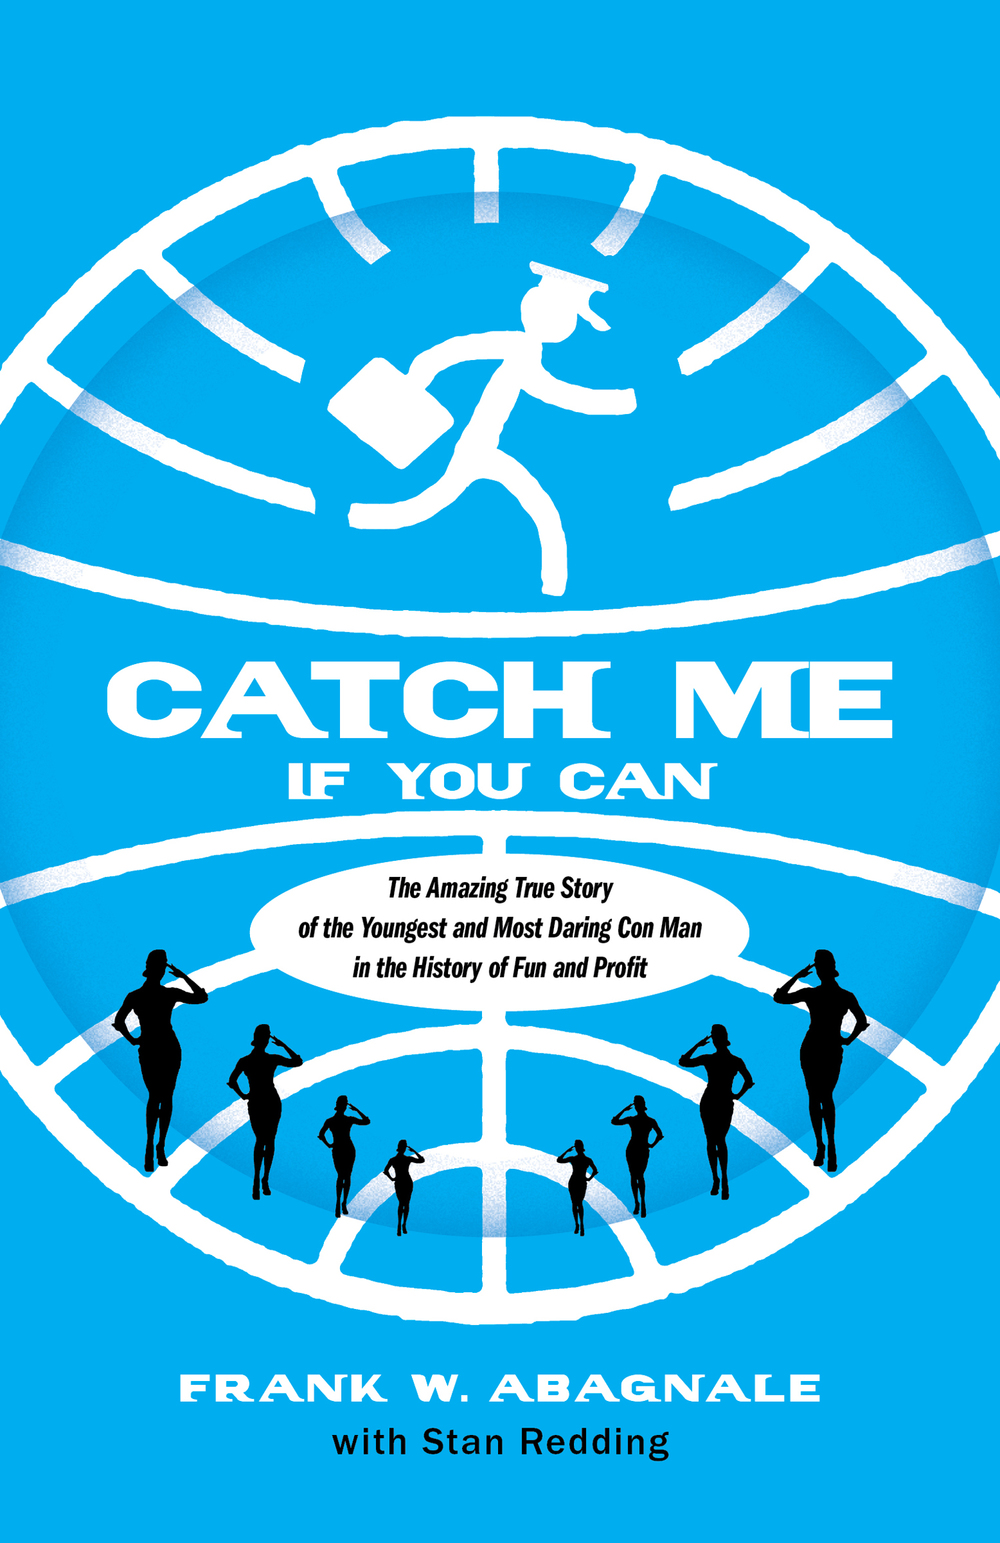 CATCH-ME-IF-YOU-CAN-comp-ss6.jpg